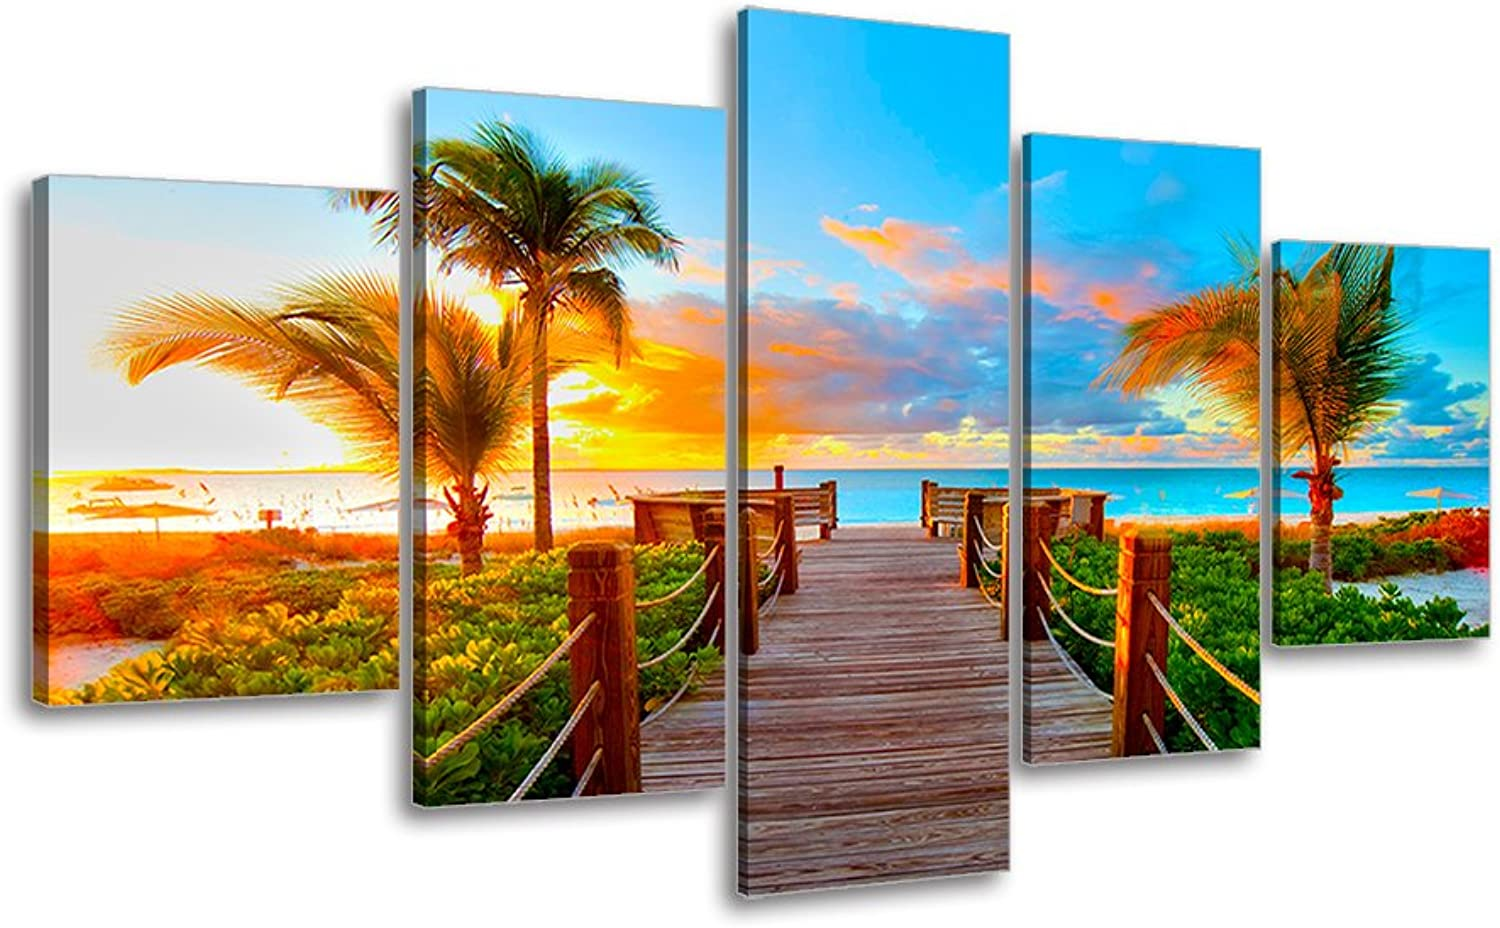 Tropical Beach Painting Decor, SZ 5 Piece Palm Tree Sunset Picture Canvas Wall Art, Ocean Canvas Prints for Bedroom, Ready to Hang, 1  Deep, Waterproof, Medium